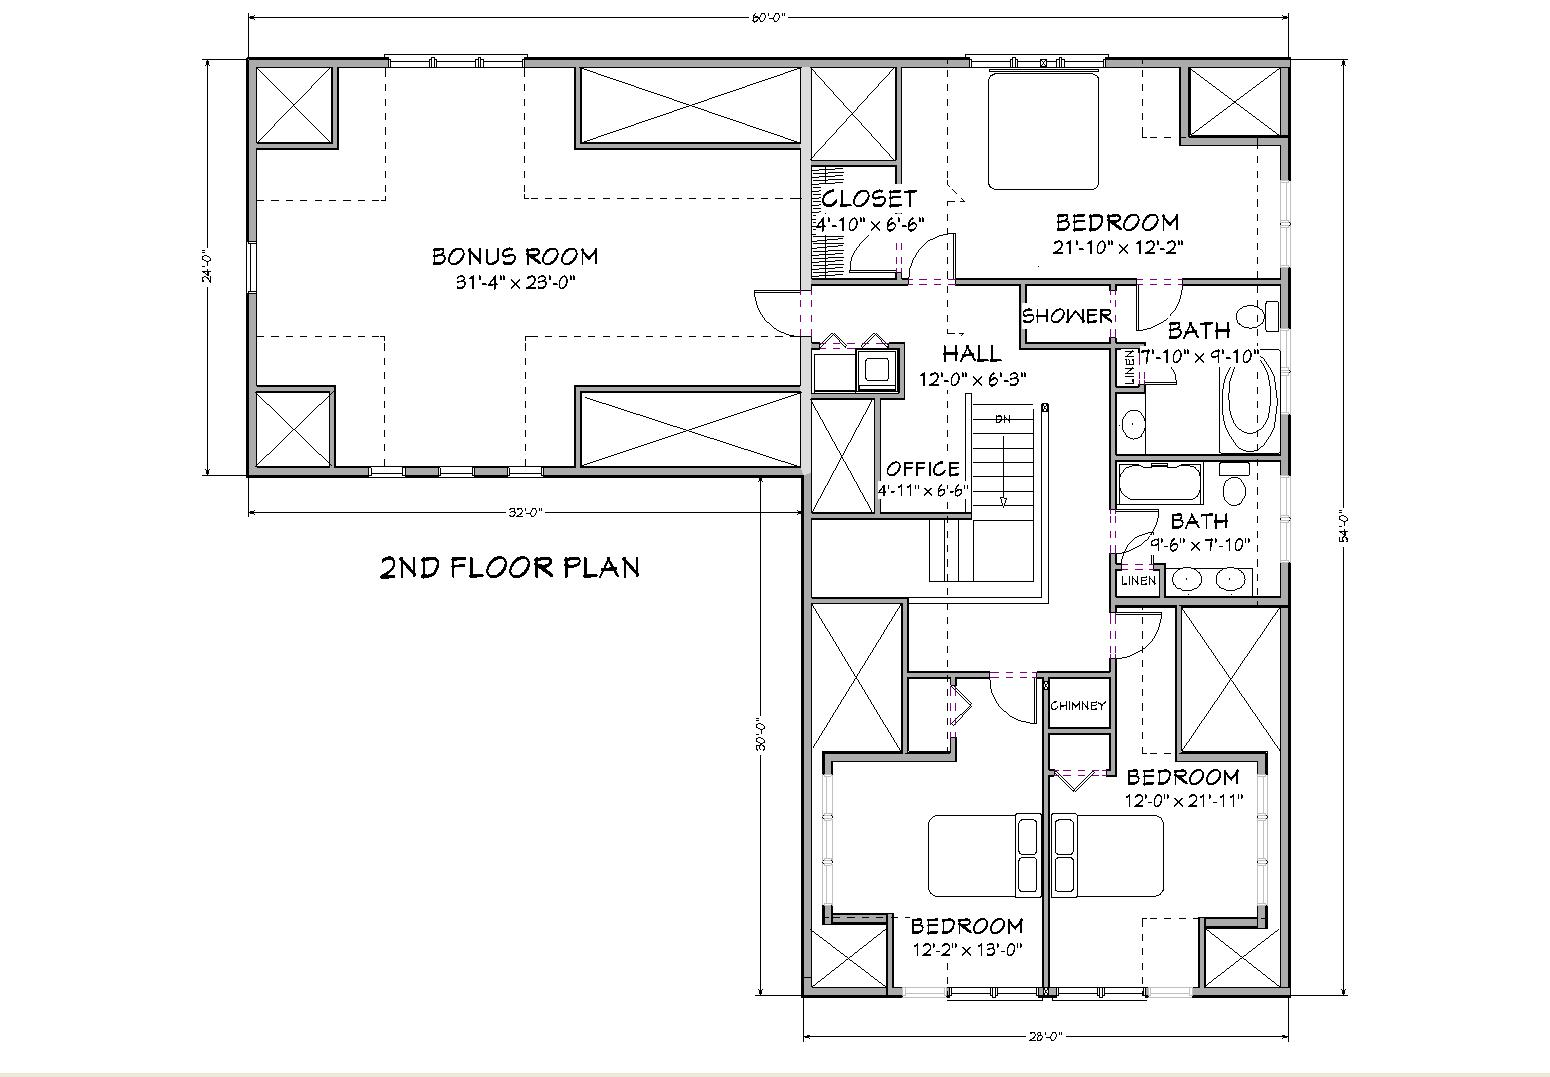 3000 square foot home plans floor plans House plans 2500 sq ft one story